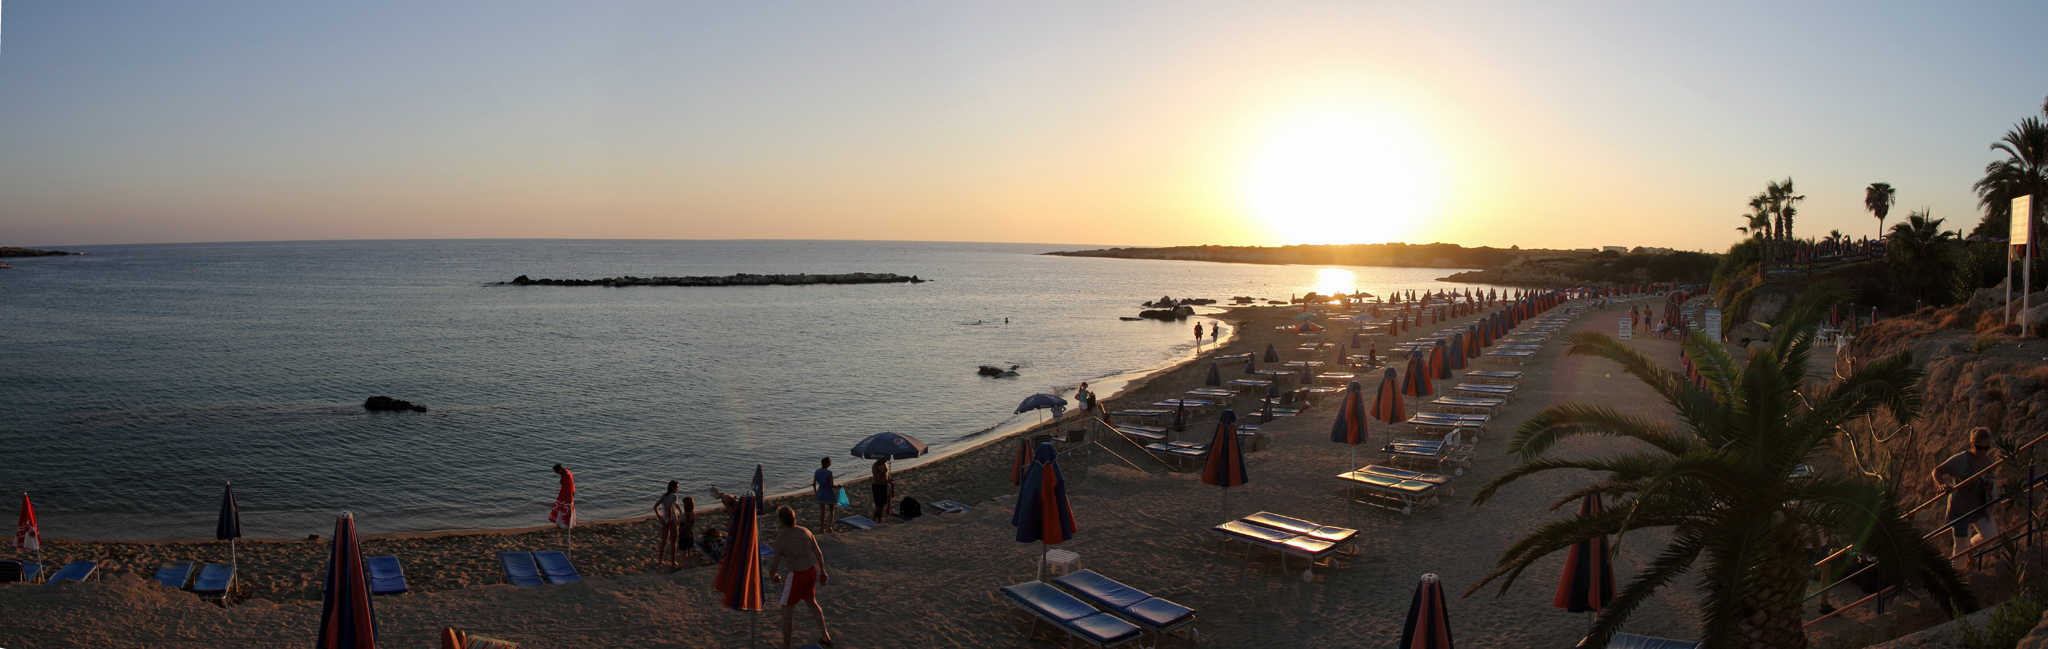 Cyprus. The sandy beach Coral Bay in Paphos